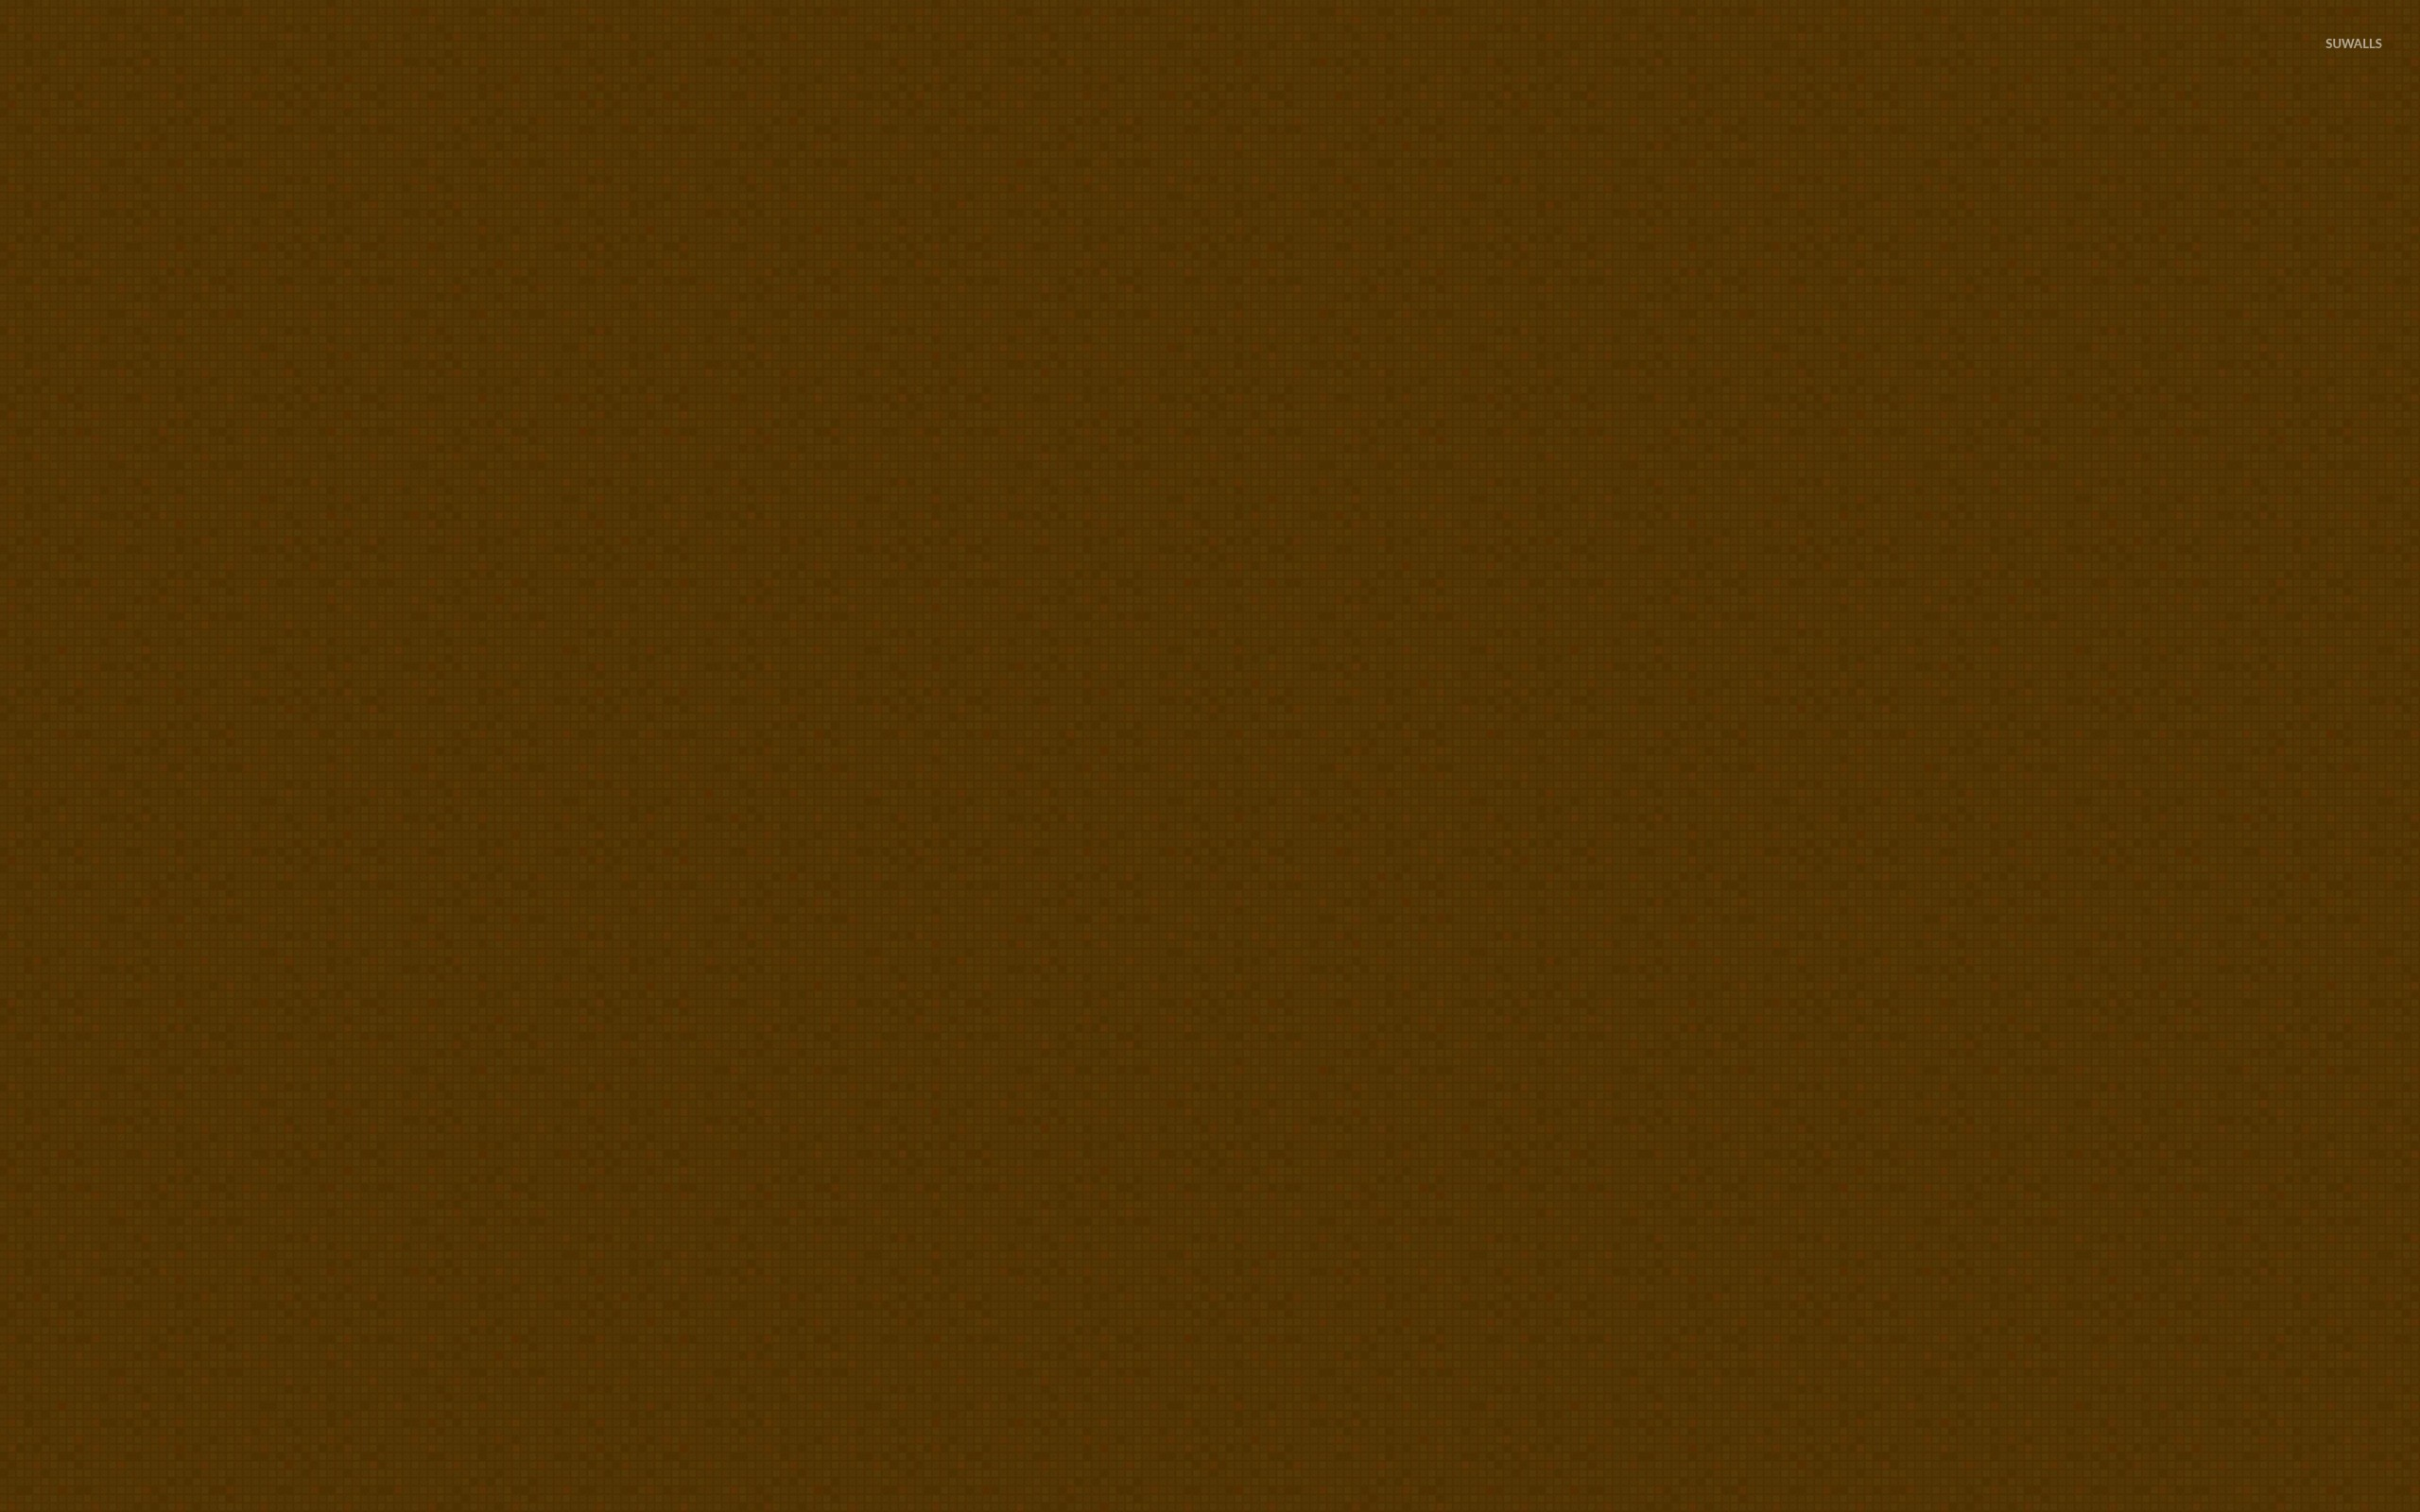 wallpaper 3840x2160 abstract brown - photo #2